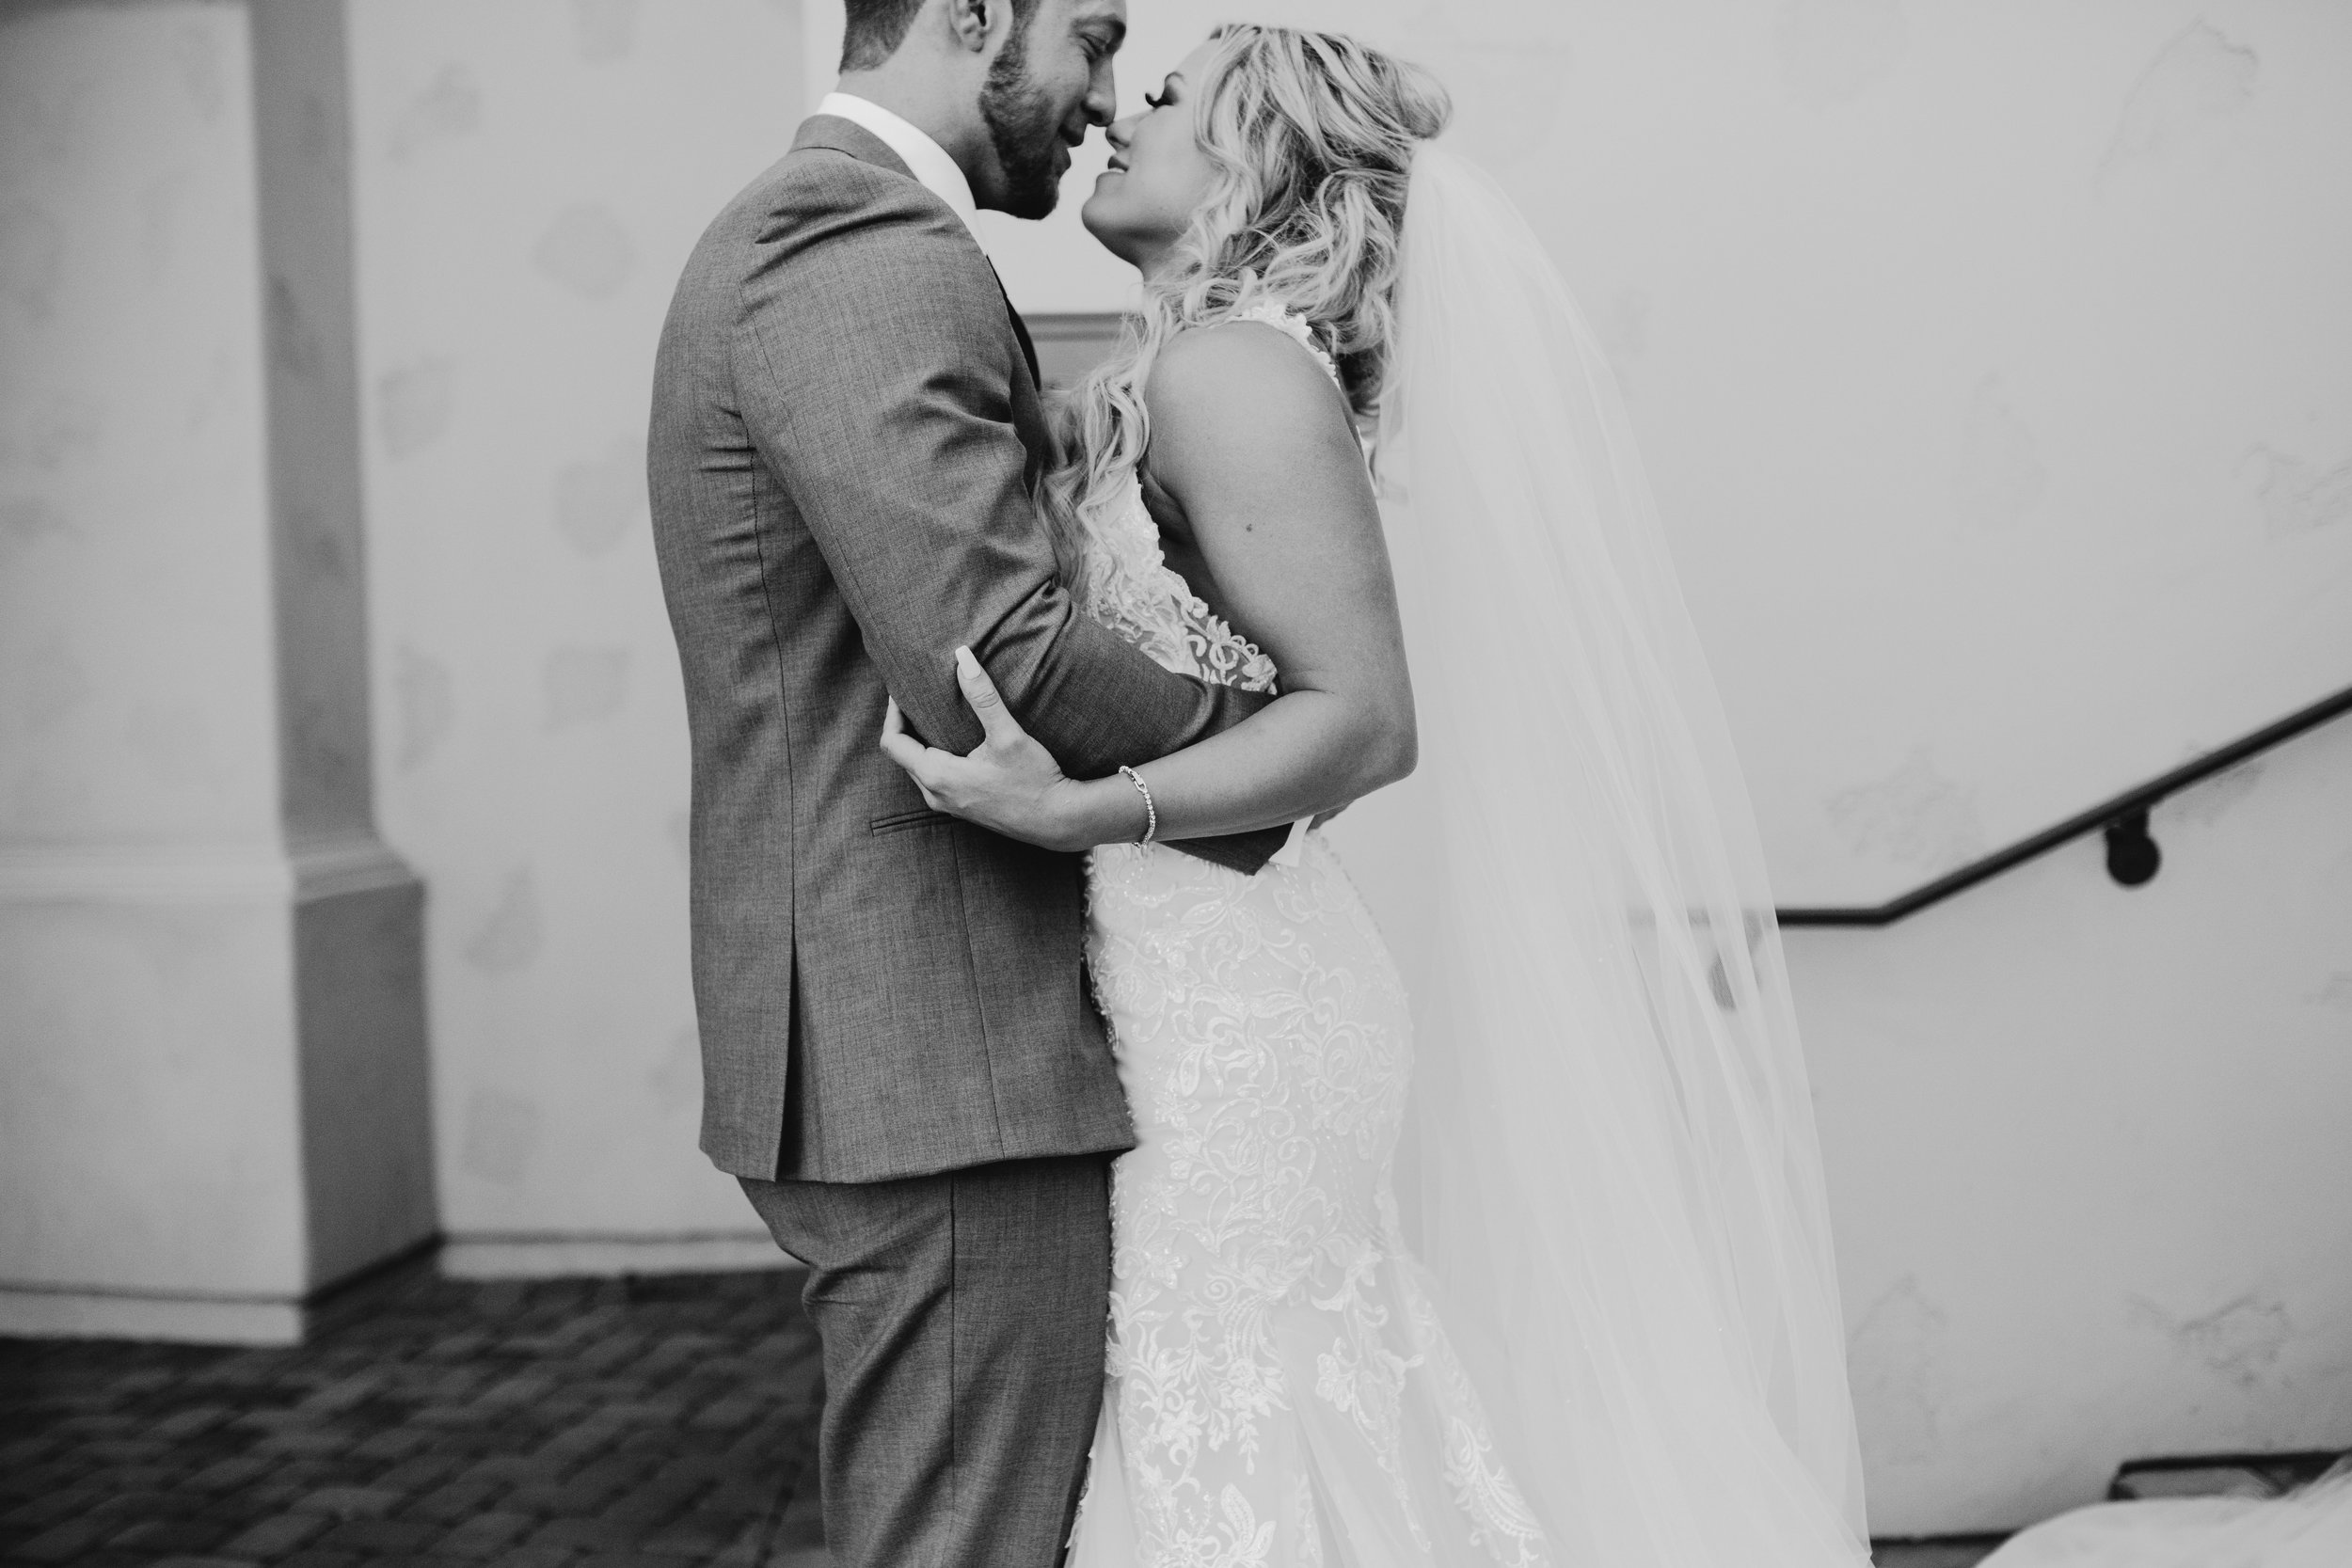 DianaLakePhoto-A+C-Wedding-FirstLook_27.jpg